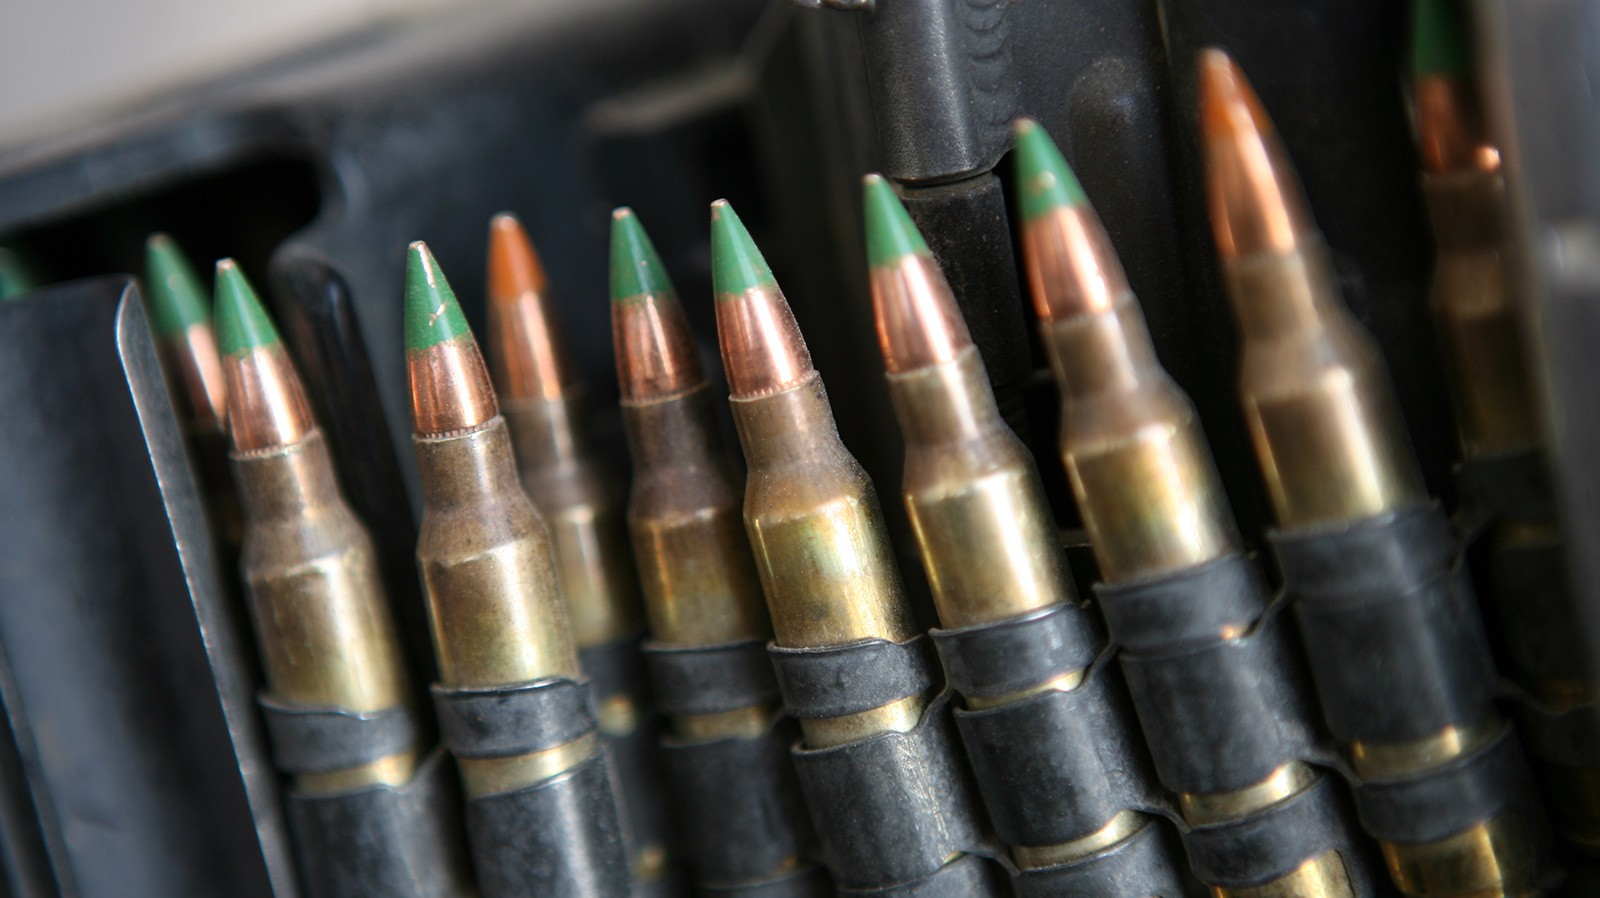 Why the Battle Over So-Called 'Cop-Killer' Ammunition Is Completely Ridiculous